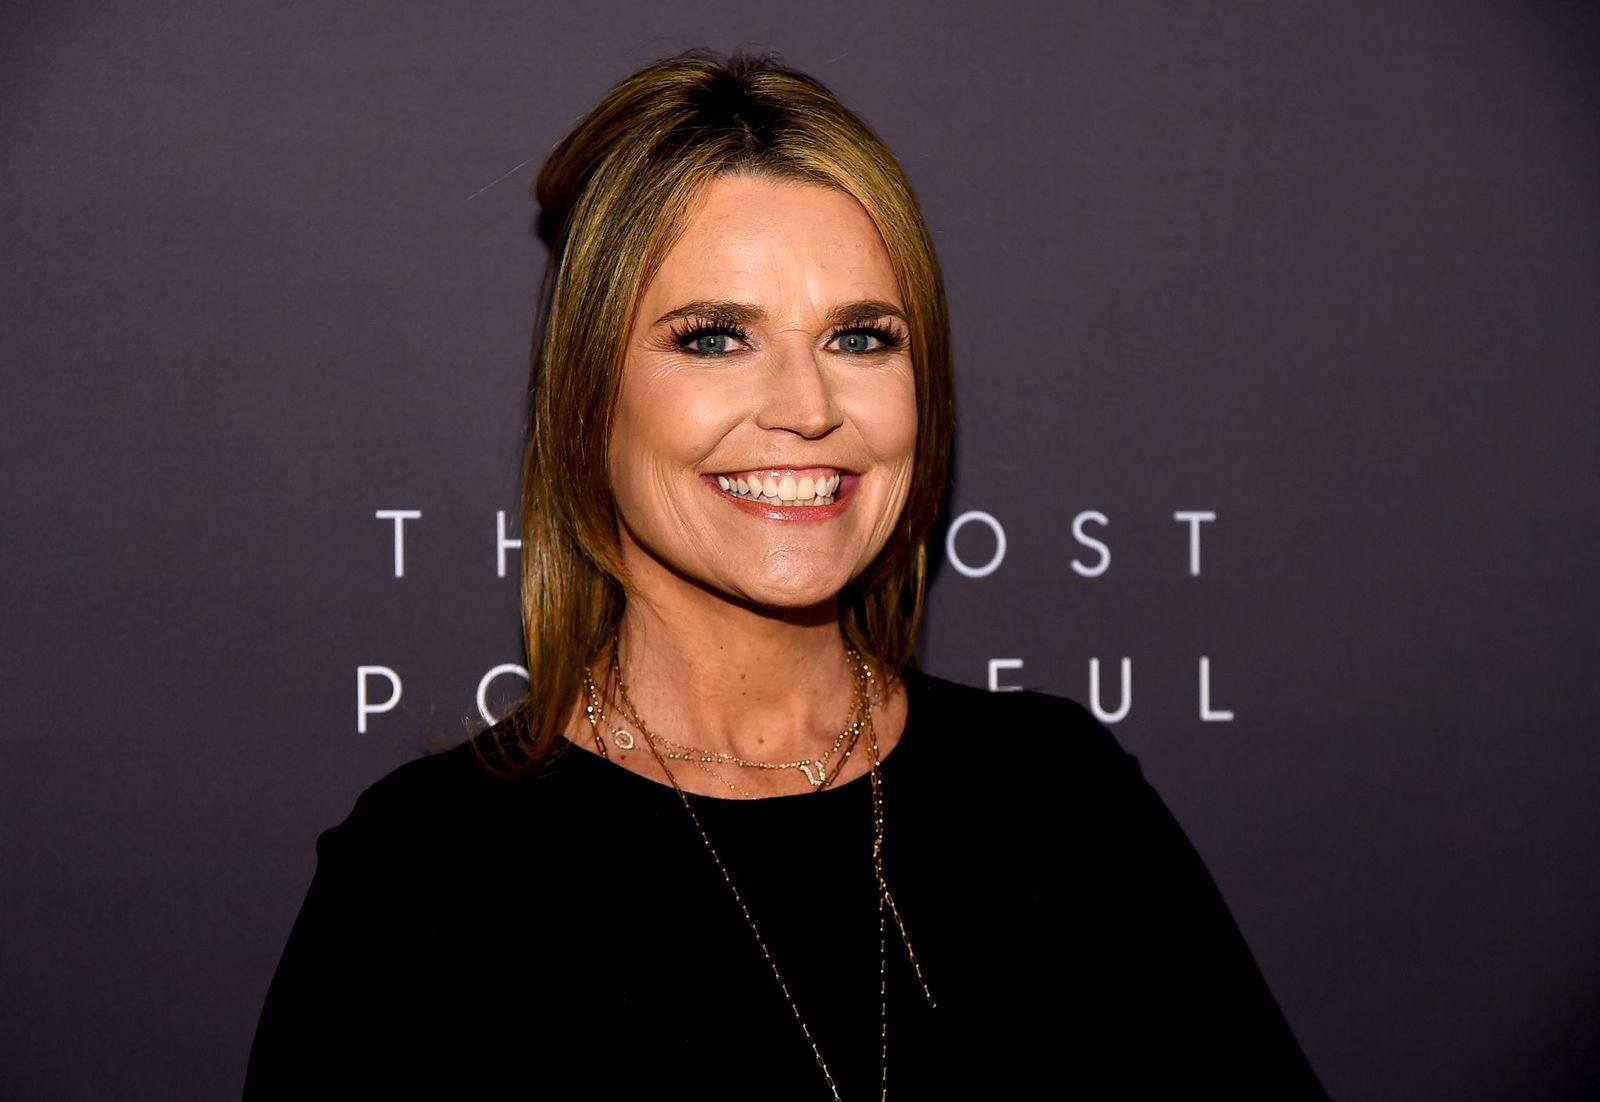 Savannah Guthrie at the Hollywood Reporter's 9th Annual Most Powerful People In Media at The Pool on April 11, 2019   Photo: Getty Images